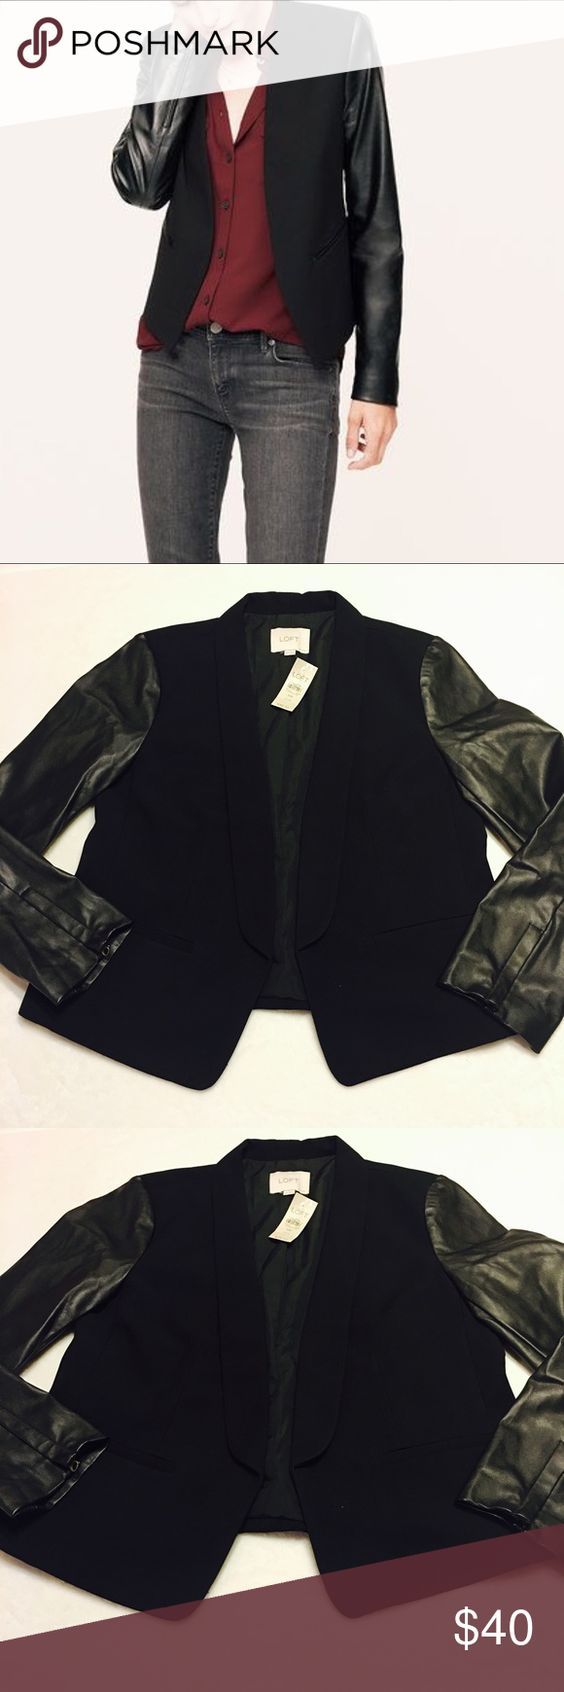 ‼️Sale‼️Ann Taylor LOFT Blazer with Faux Leather A beautiful open blazer with faux leather sleeves. A gorgeous and sexy addition to any closet. This is a petite article. LOFT Jackets & Coats